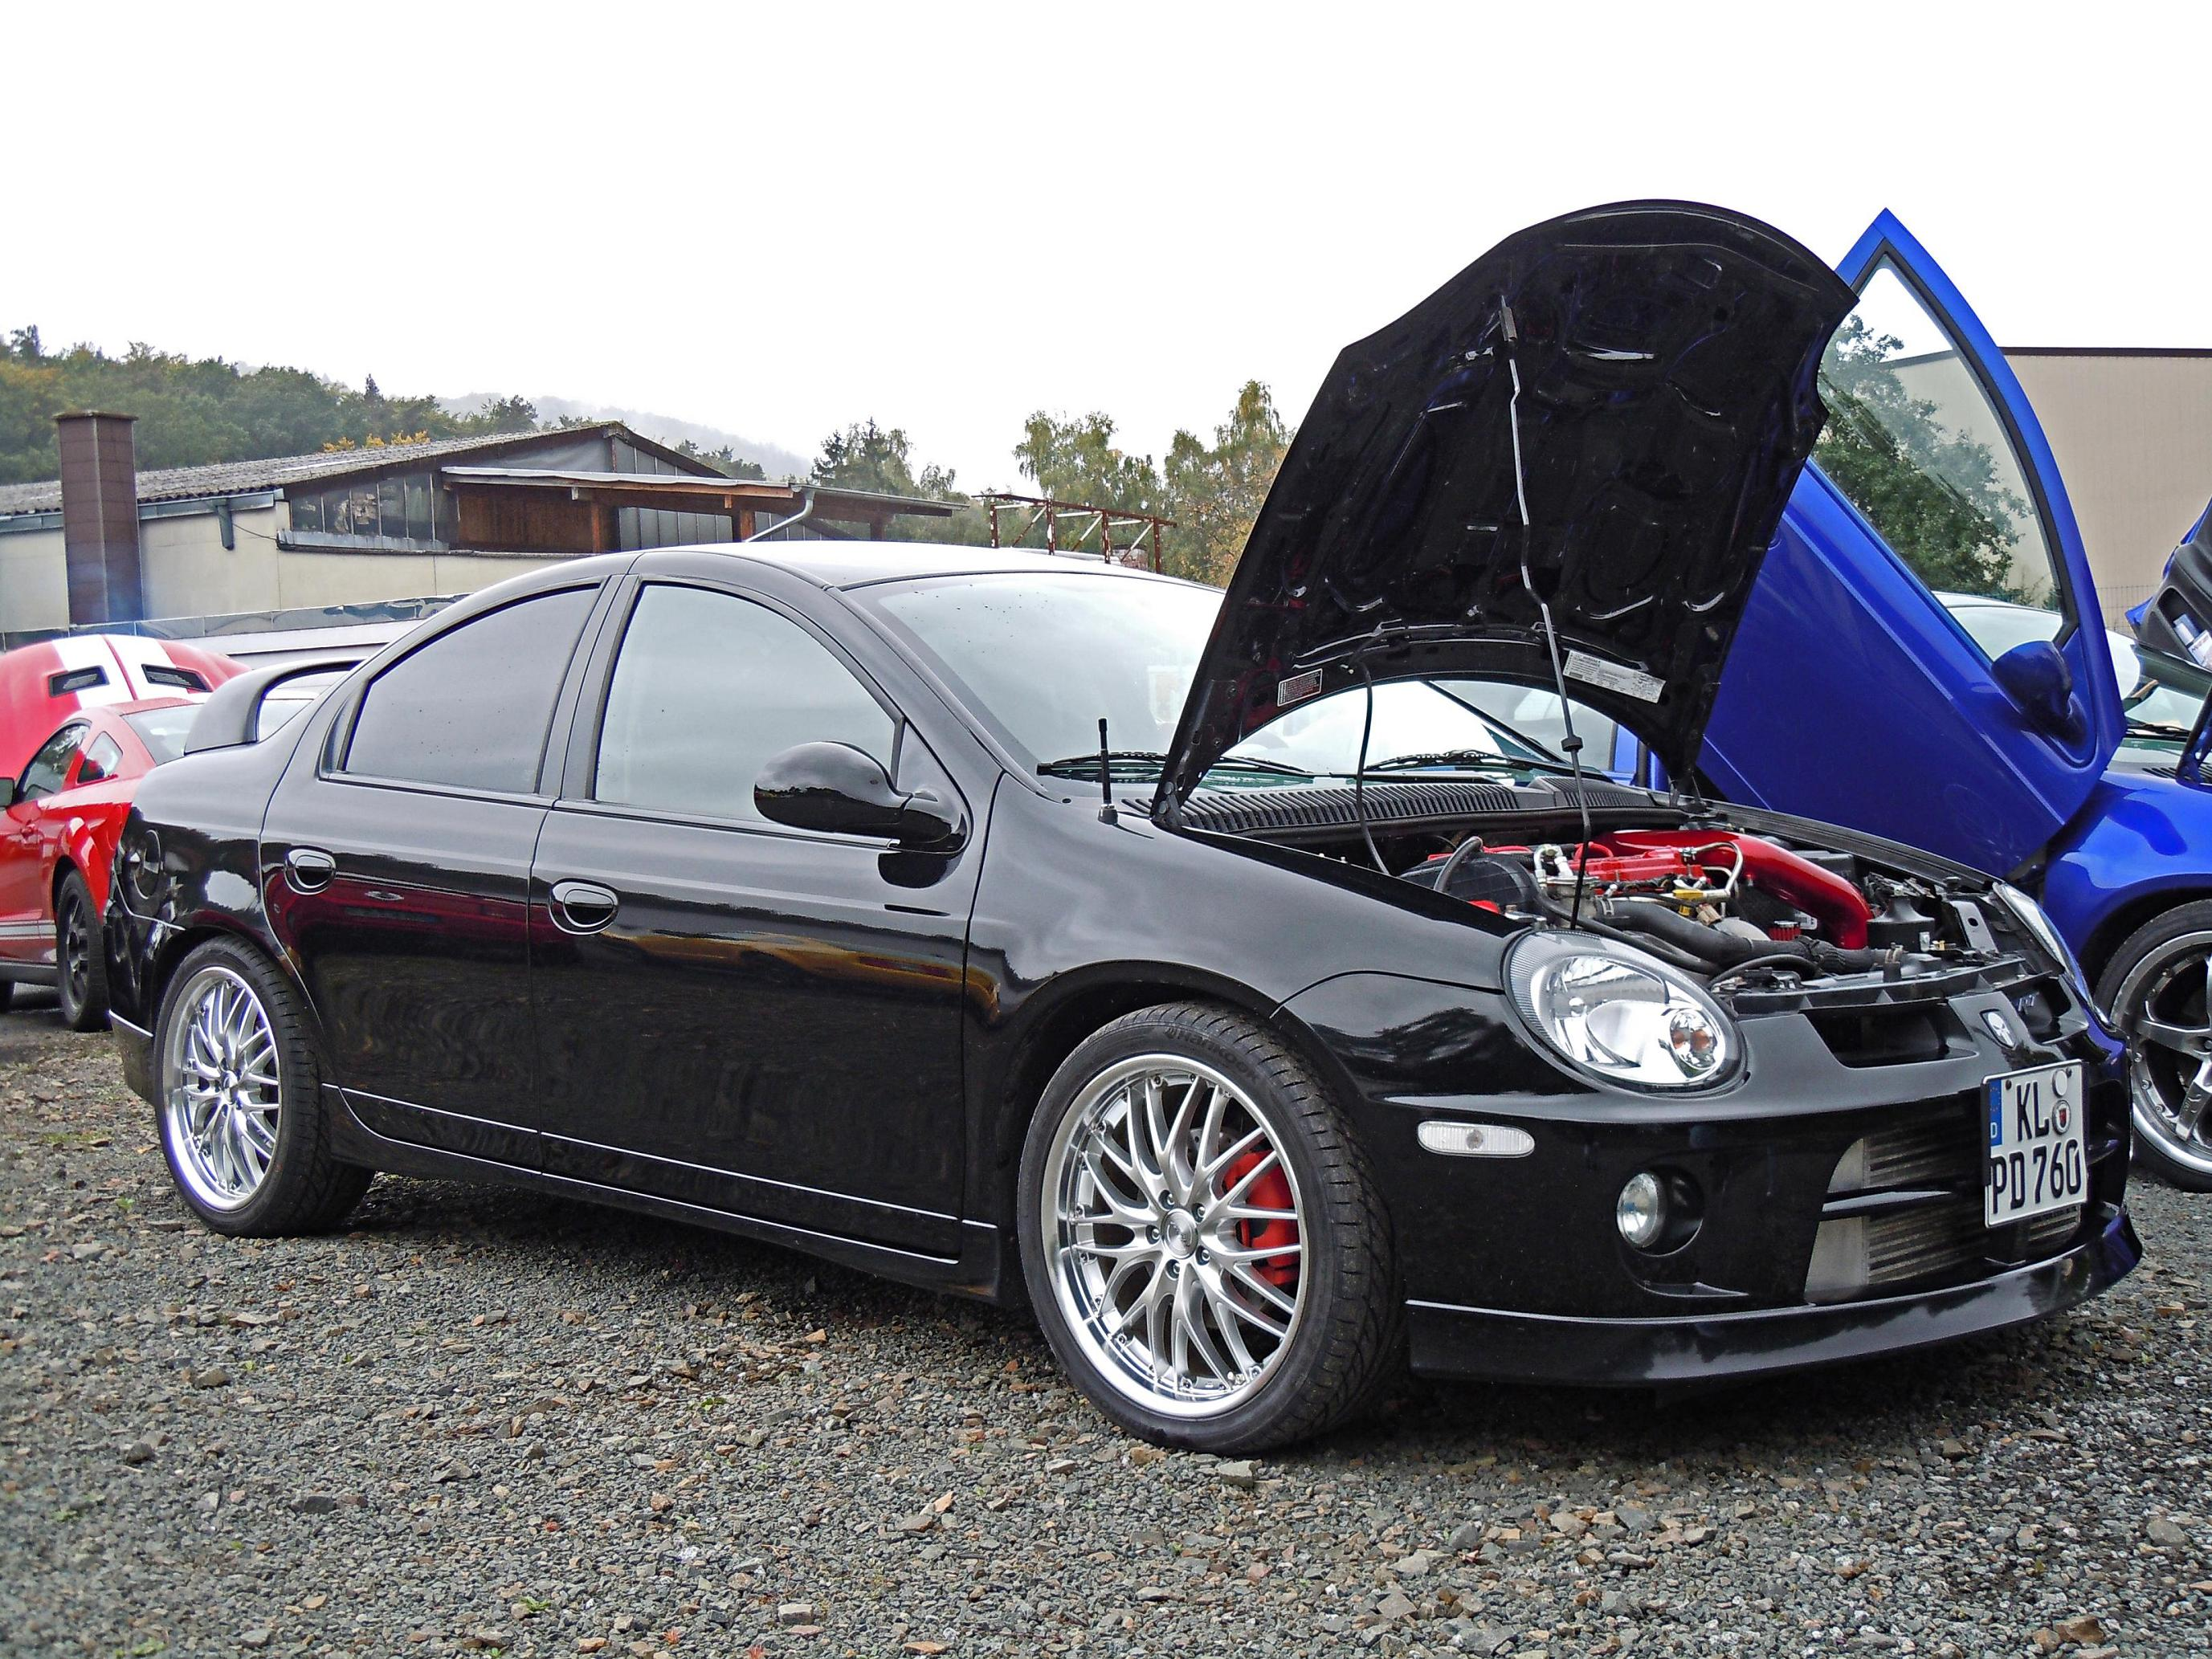 2005 dodge neon srt 4 1 4 mile drag racing timeslip specs. Black Bedroom Furniture Sets. Home Design Ideas